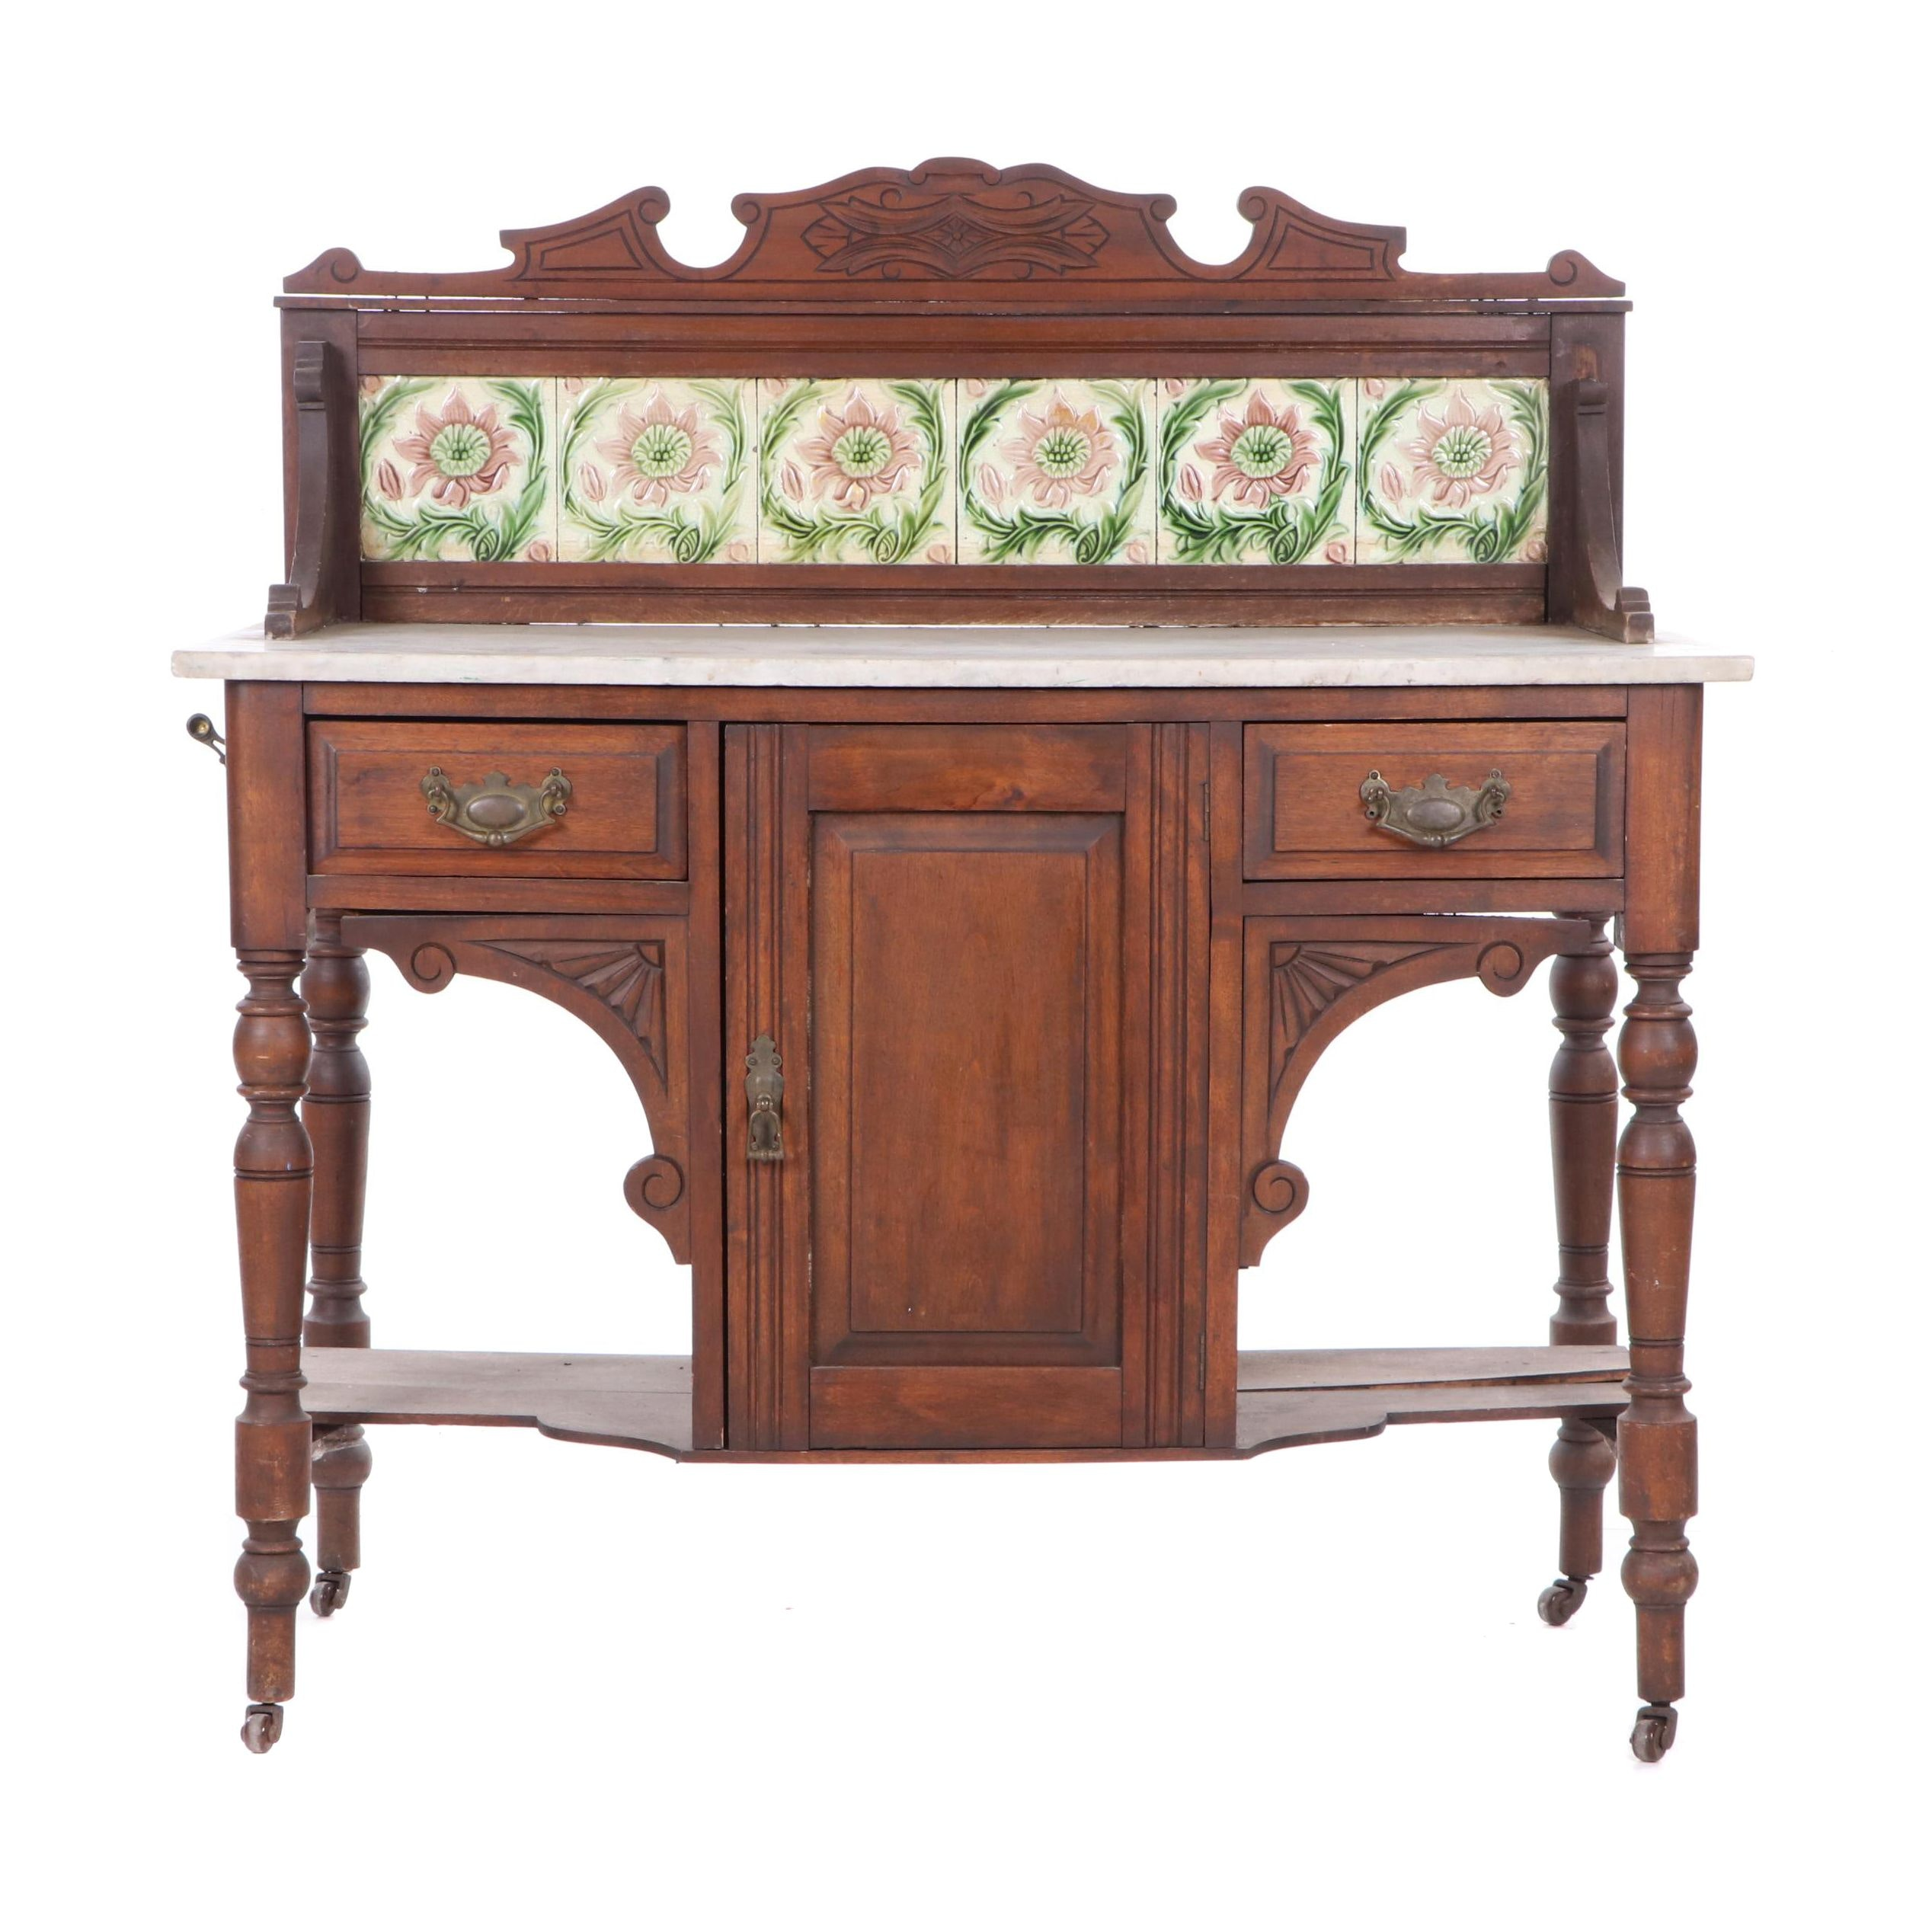 Eastlake Style Carved Mahogany and Marble Sideboard on Casters, Early 20th C.